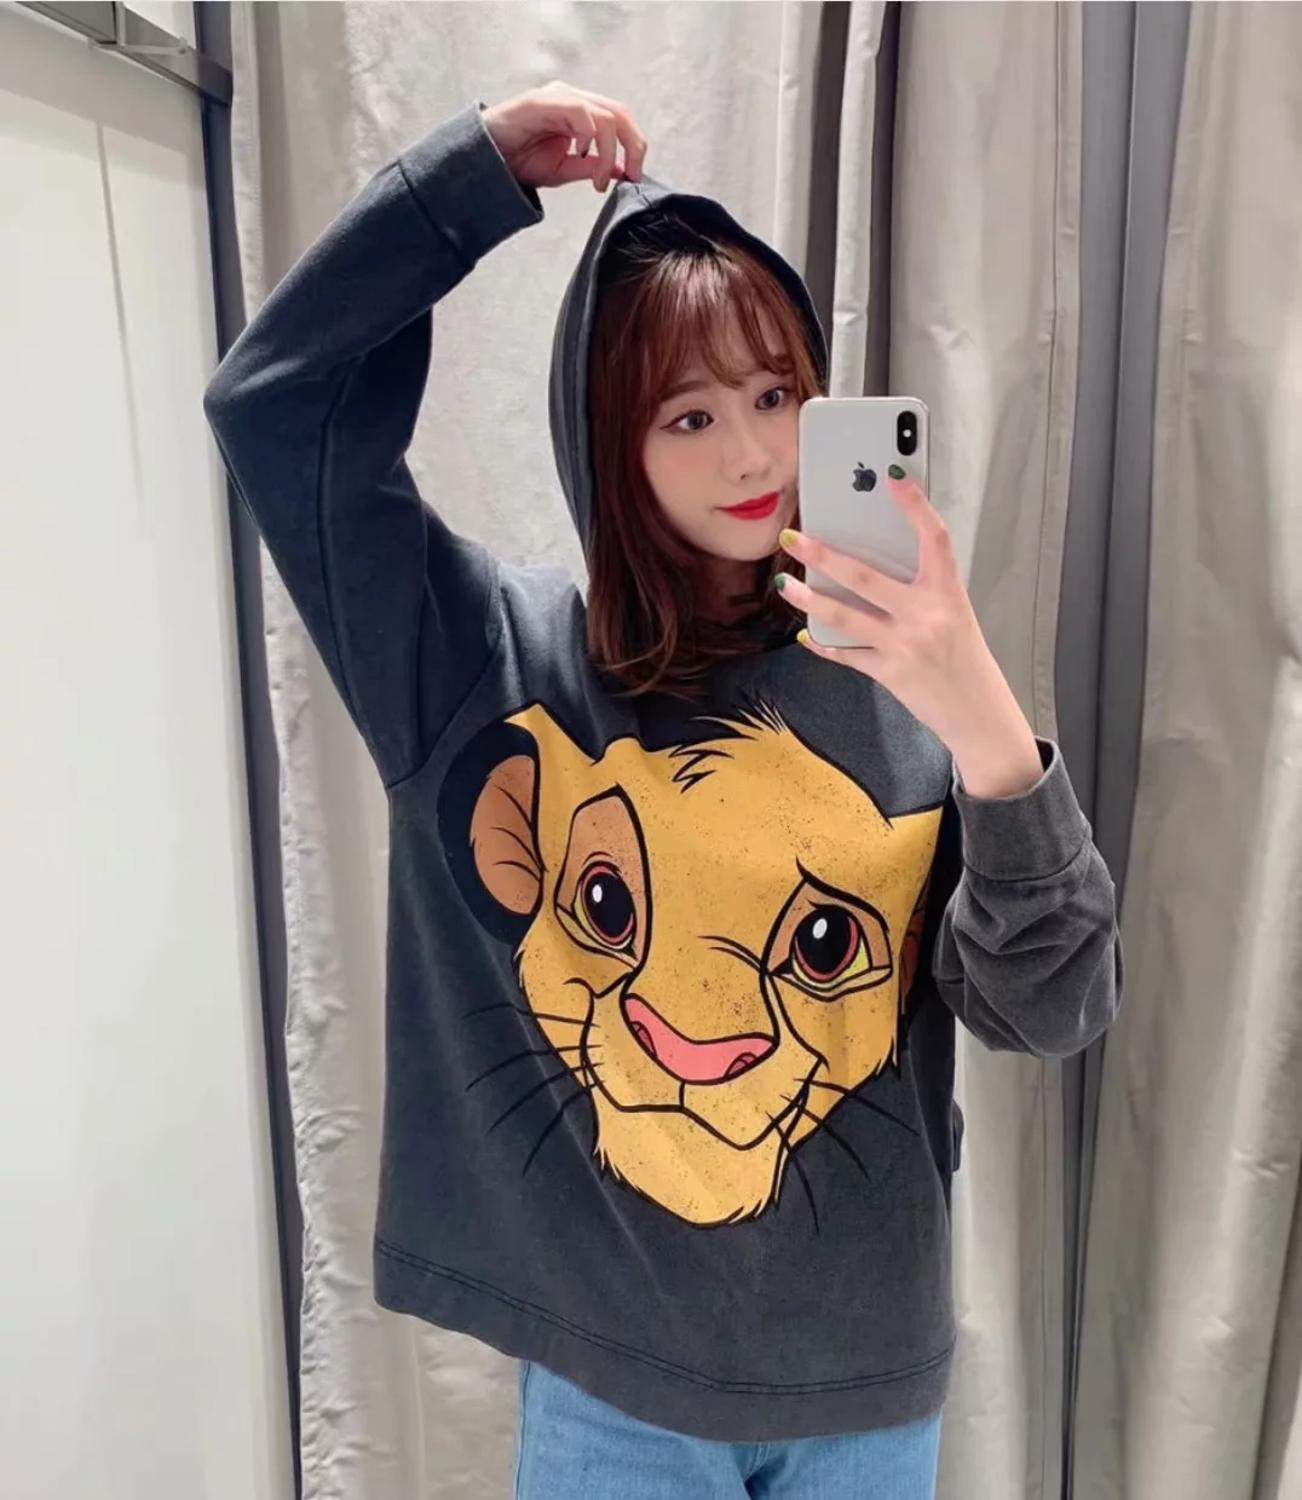 Women Tee Fashion Sweatshirt The Lion King Hoodies Clothing Pullover Streetwear Cartoon 2019 Autumn Hooded Oversize